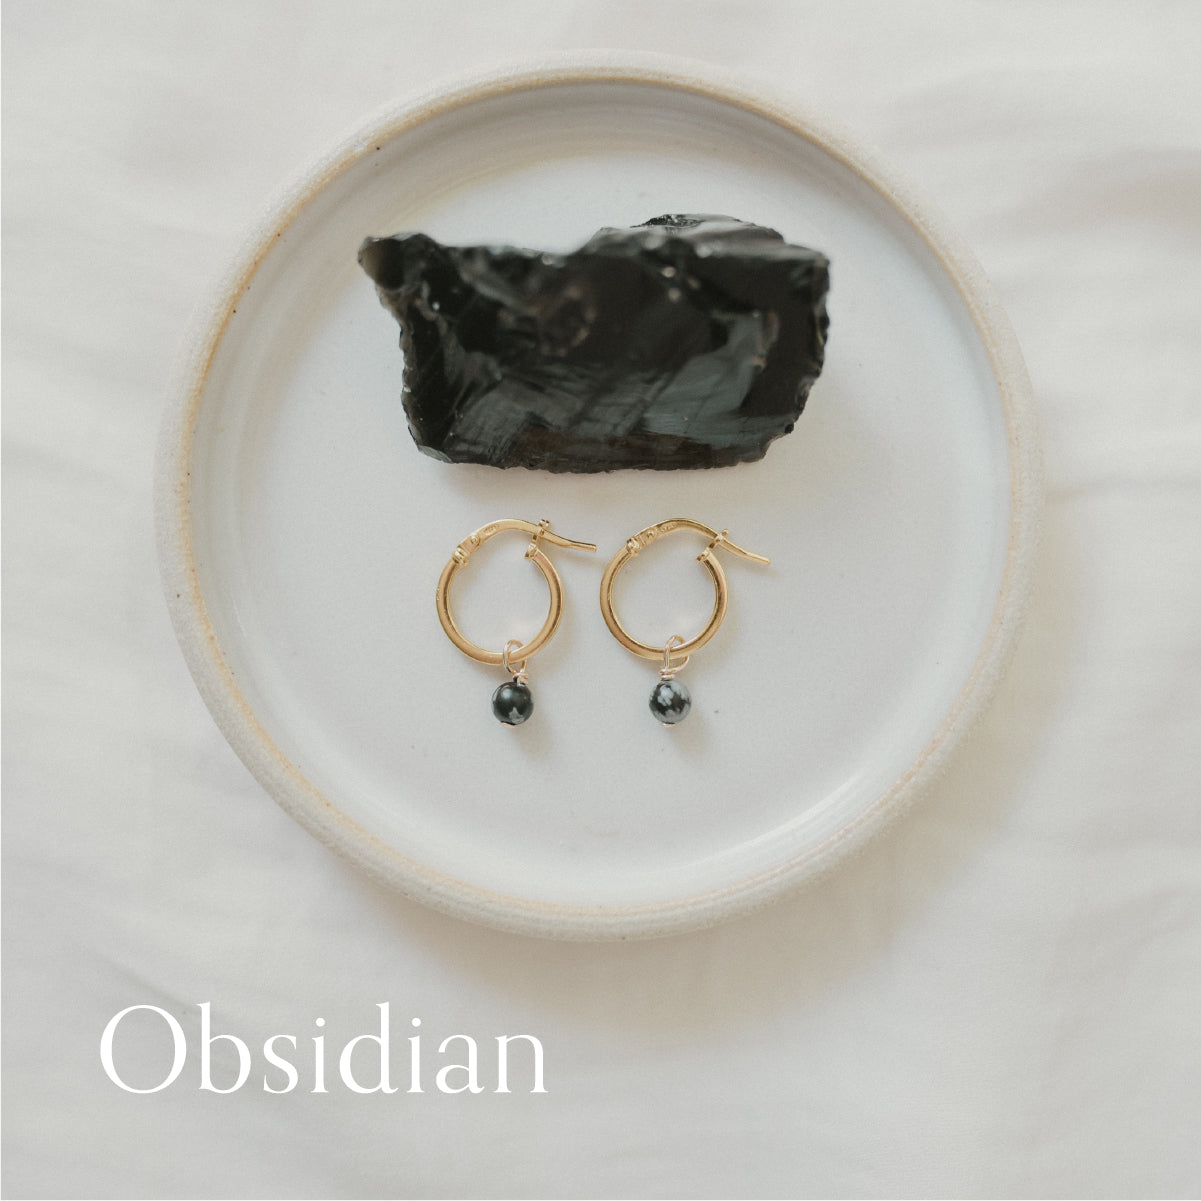 Obsidian gemstone forecast